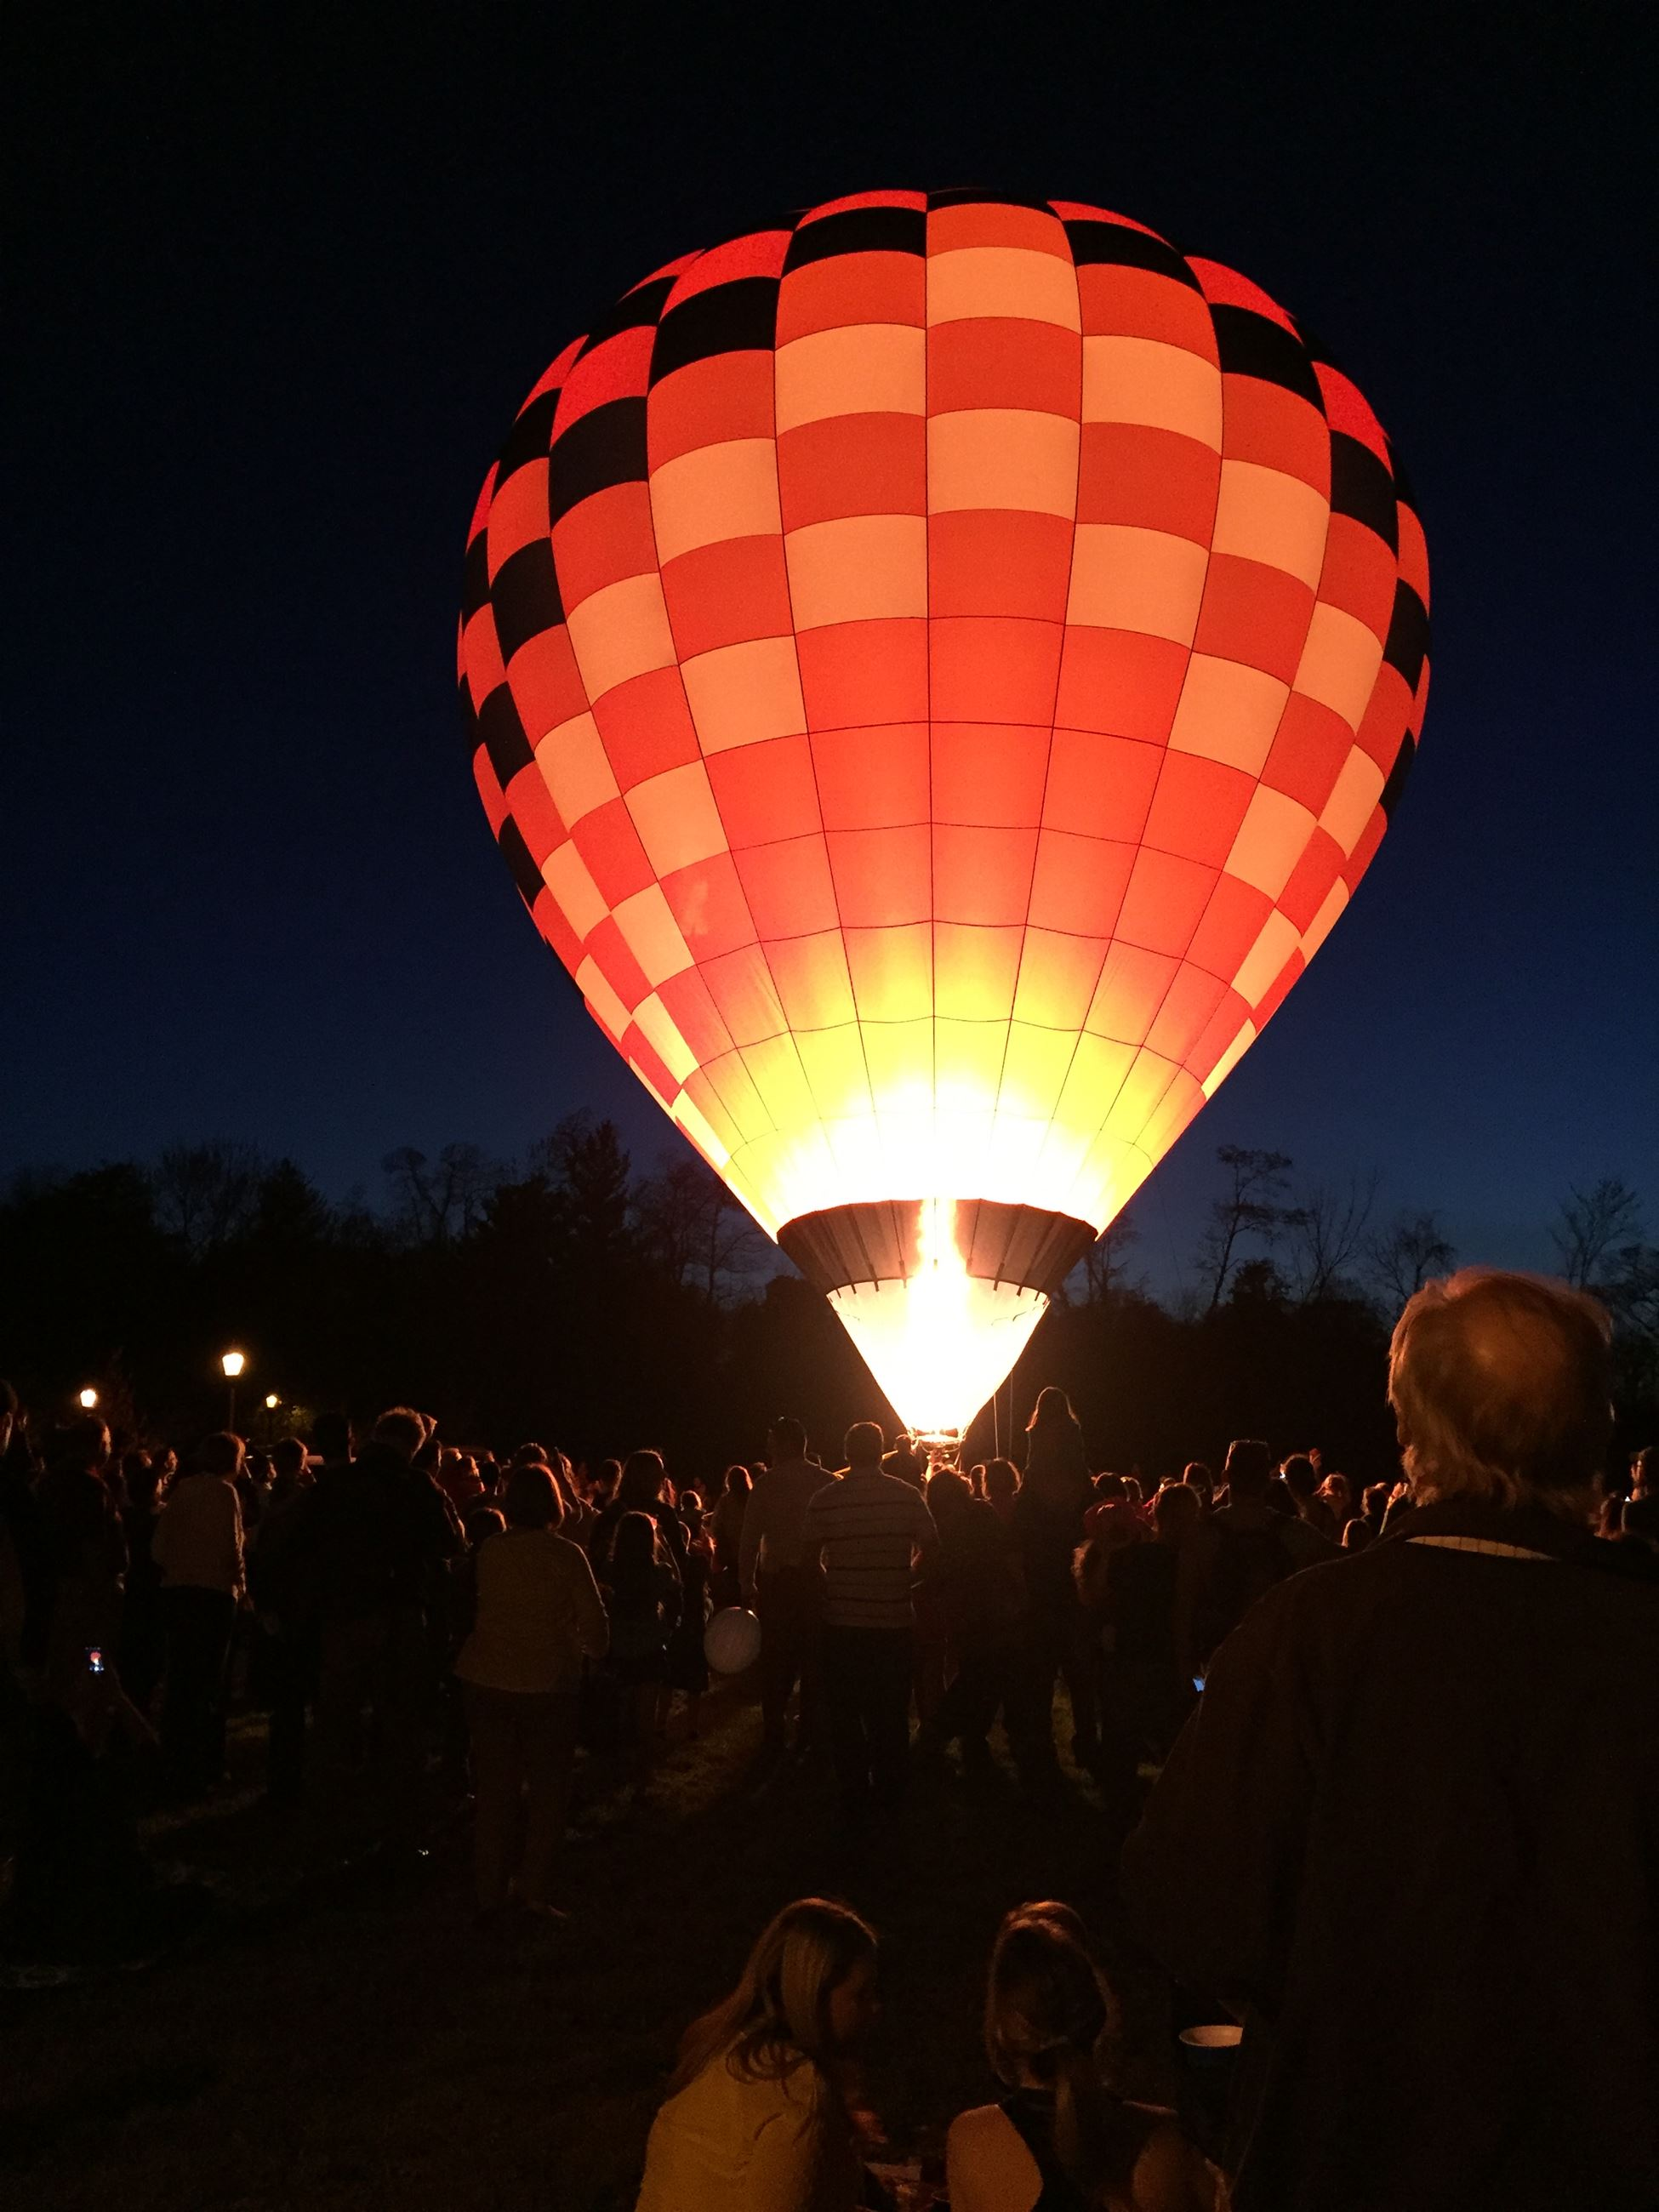 March 2017 Calendar Photo - Hot air balloon lit up at night